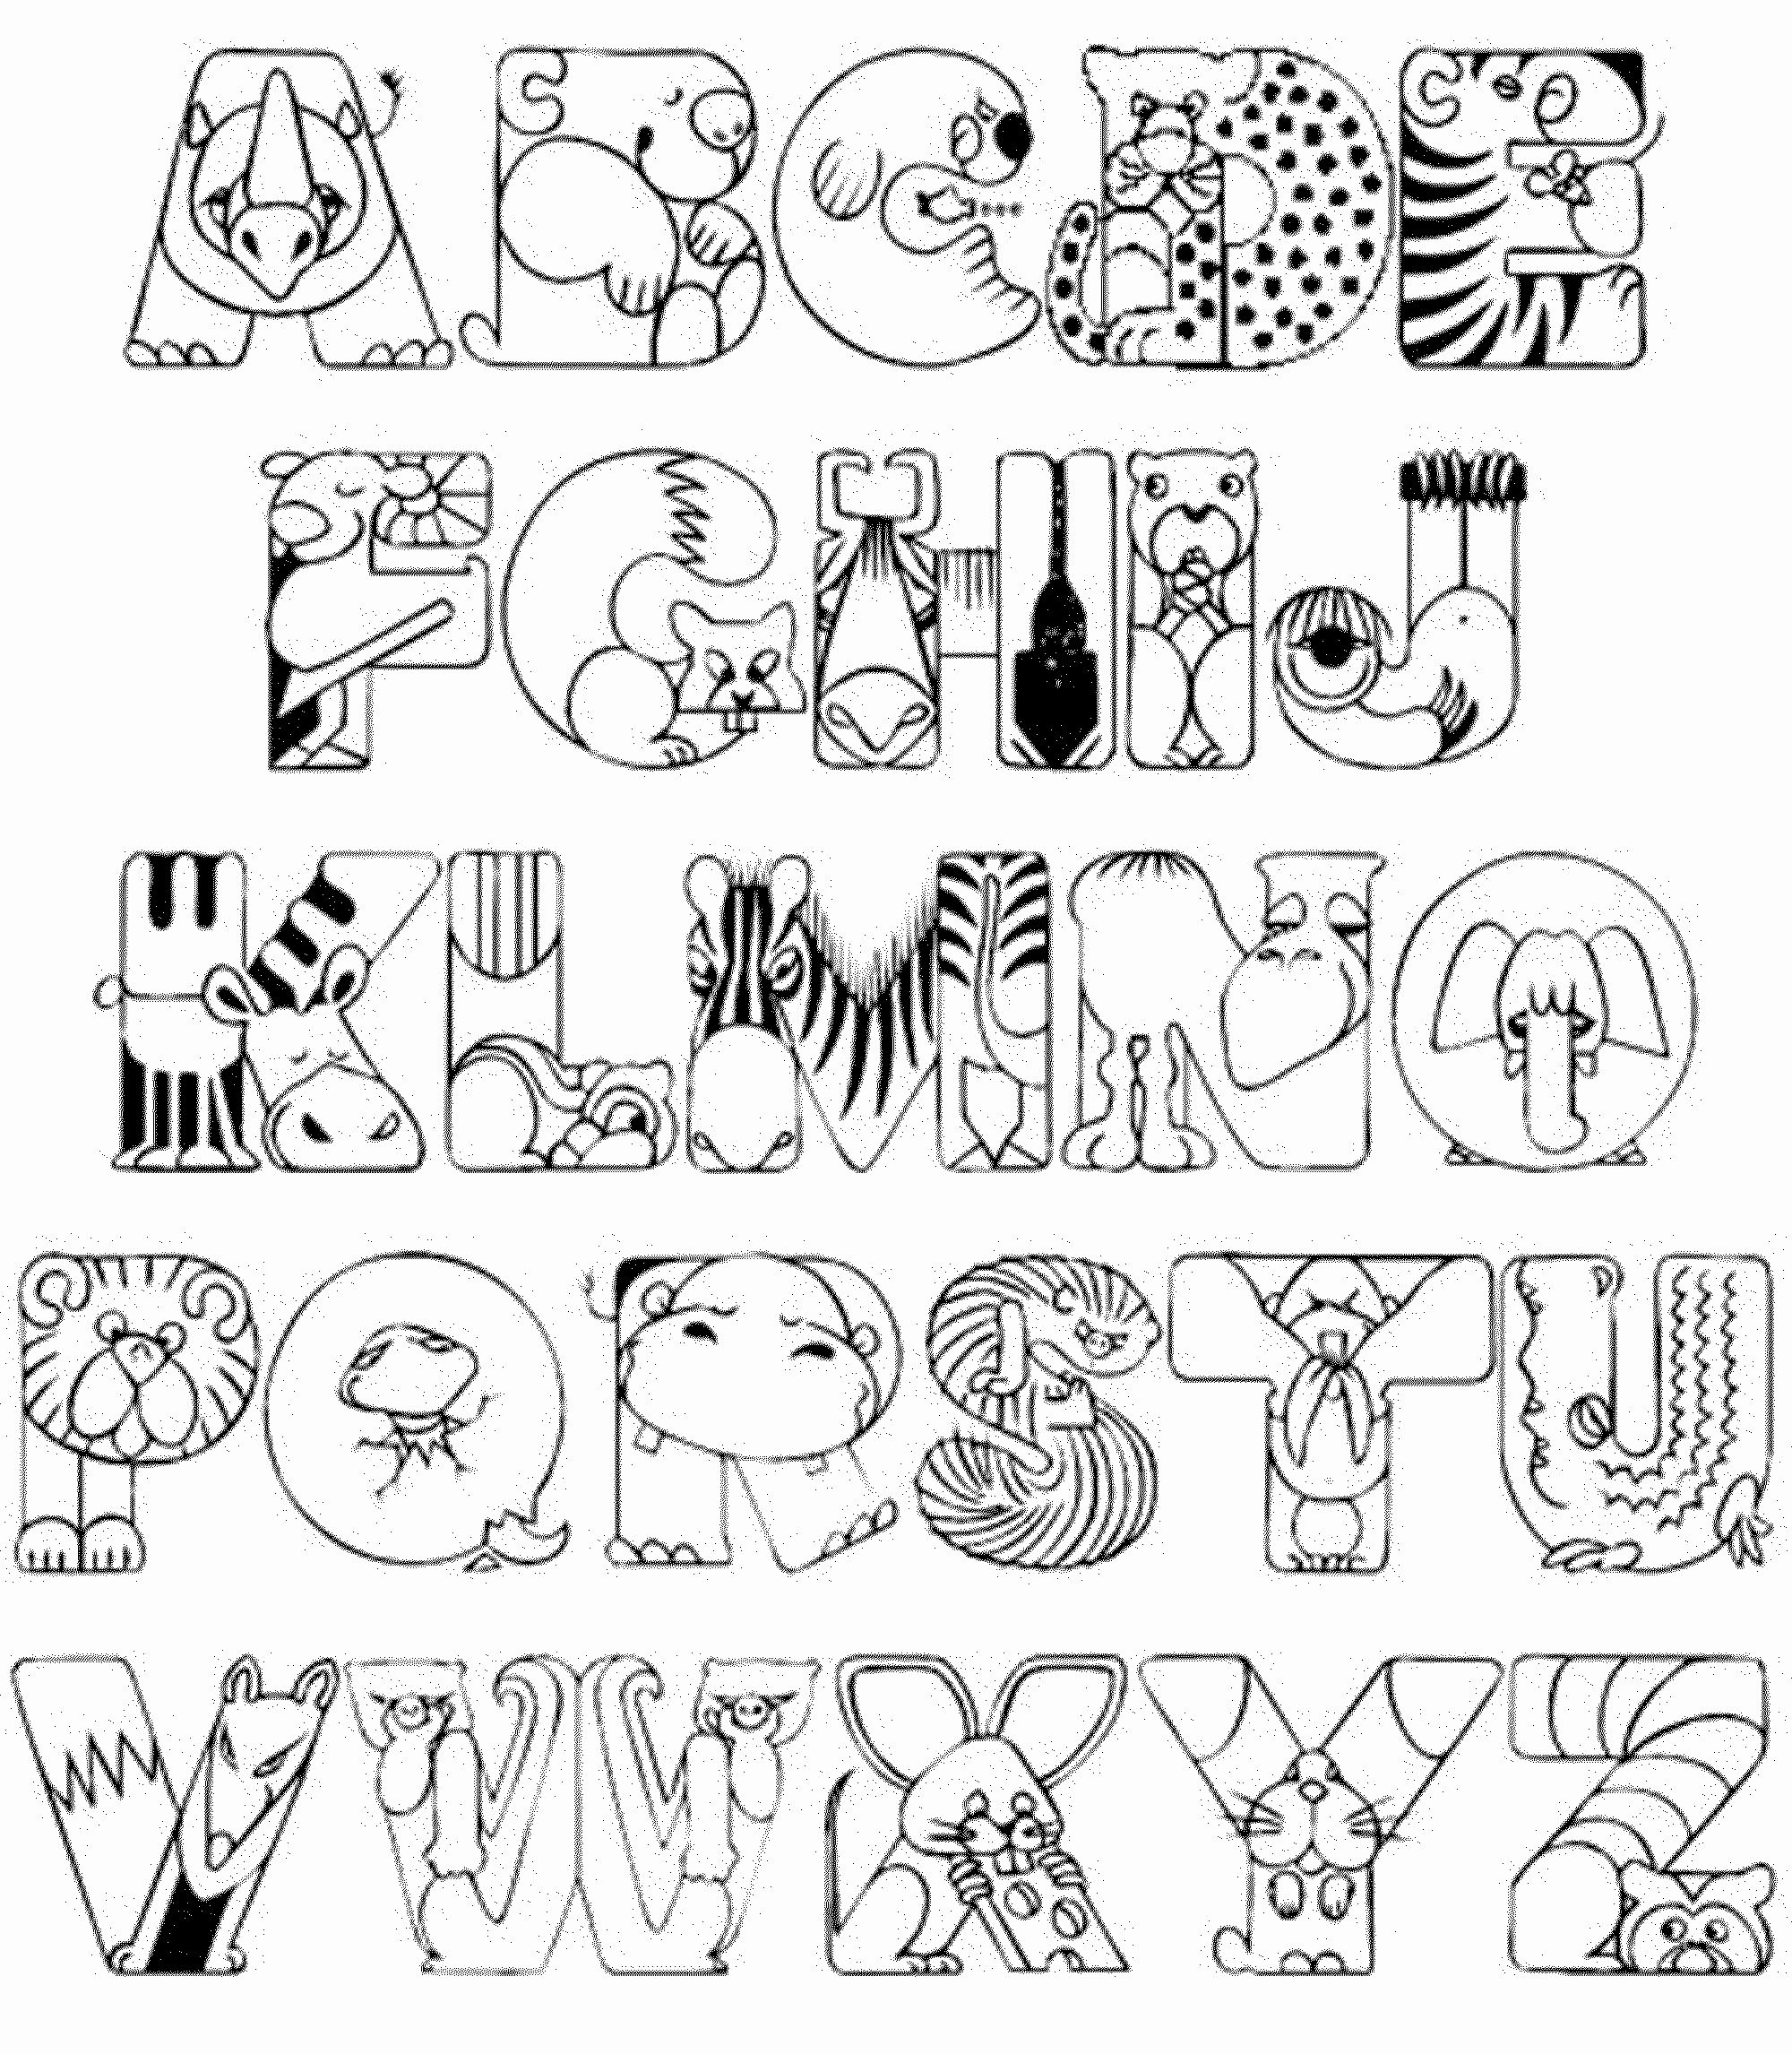 Letters Coloring Pages Printable Fresh Whole Alphabet Coloring Pages Free Printable Coloring Home In 2020 Kindergarten Coloring Pages Abc Coloring Pages Abc Coloring